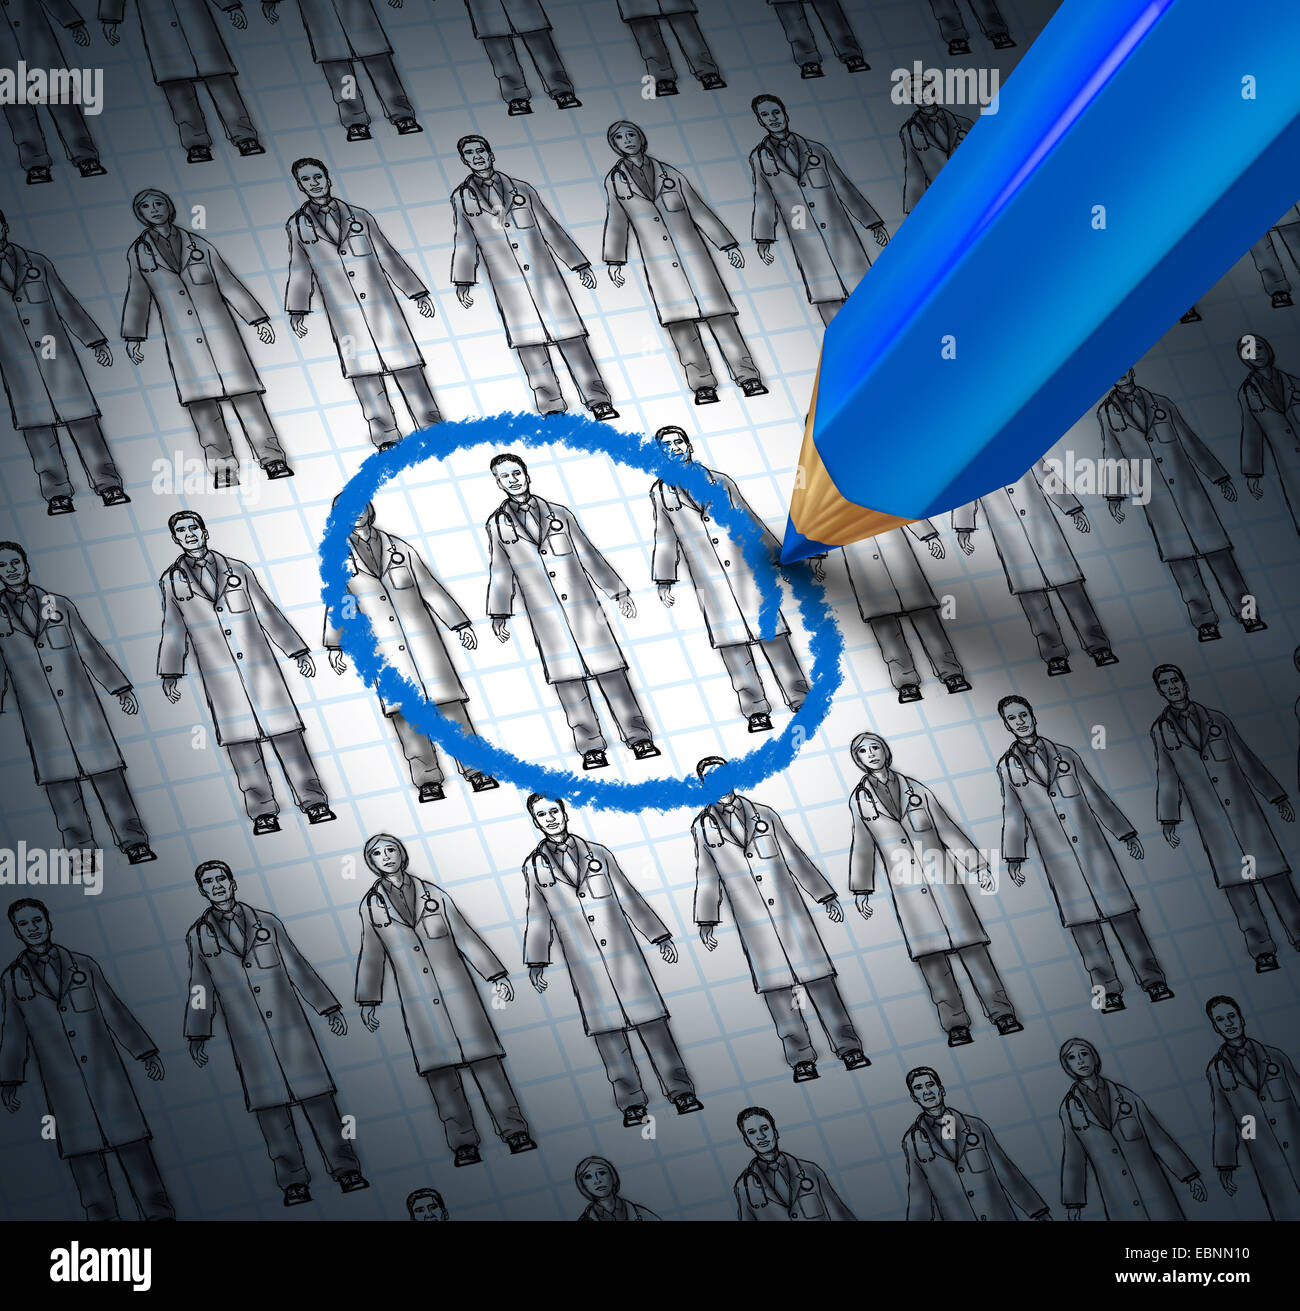 Choosing a doctor health care concept as a blue pencil selecting a medical icon sketch of generic physicians or - Stock Image